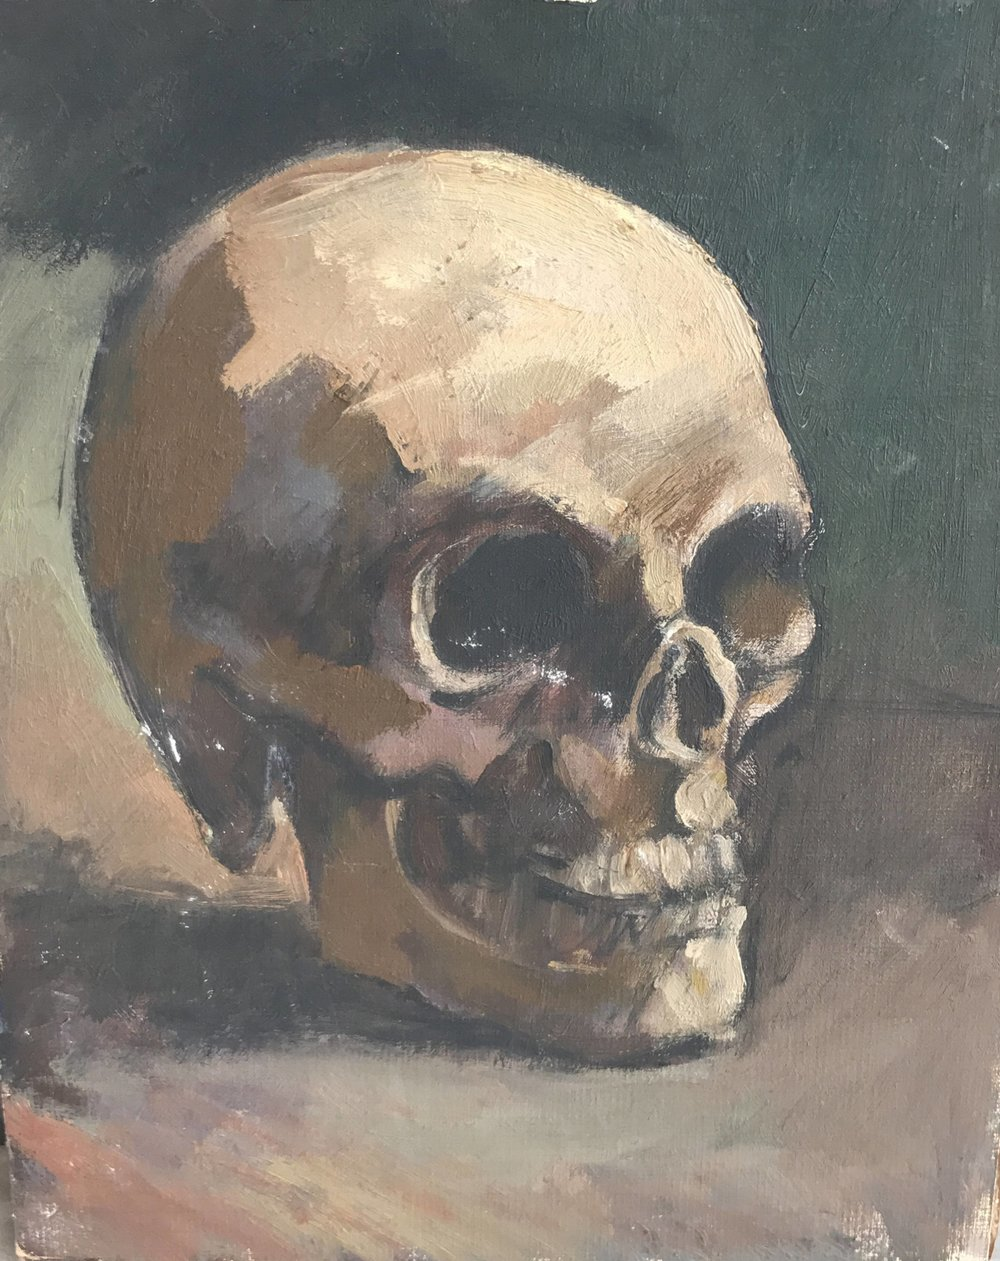 Vintage still life oil painting on board of a skull